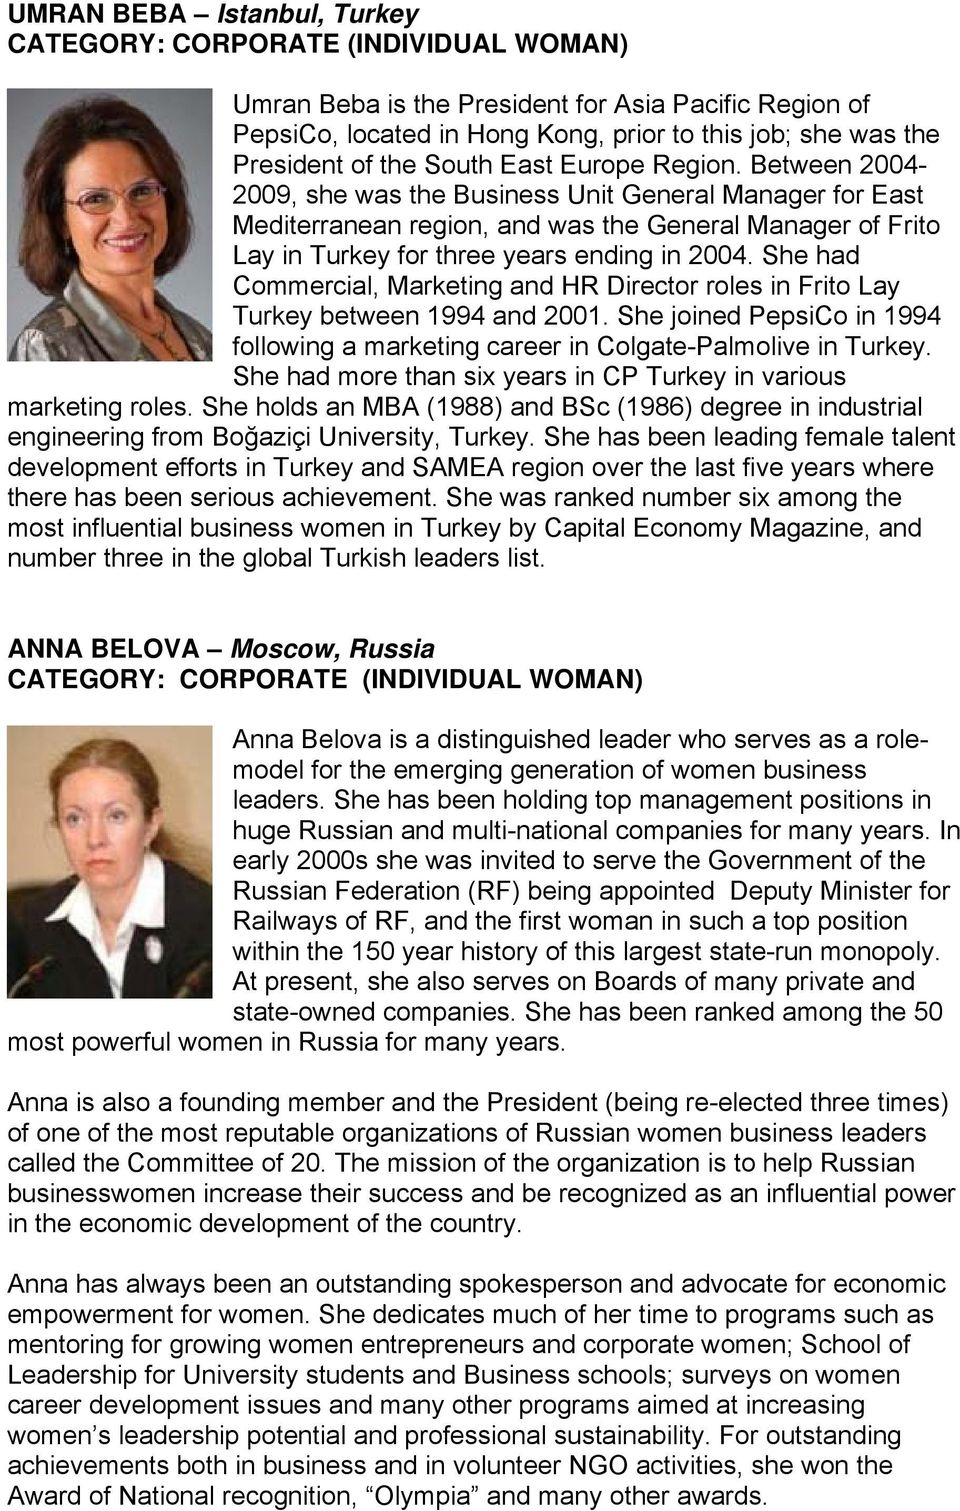 Between 2004-2009, she was the Business Unit General Manager for East Mediterranean region, and was the General Manager of Frito Lay in Turkey for three years ending in 2004.